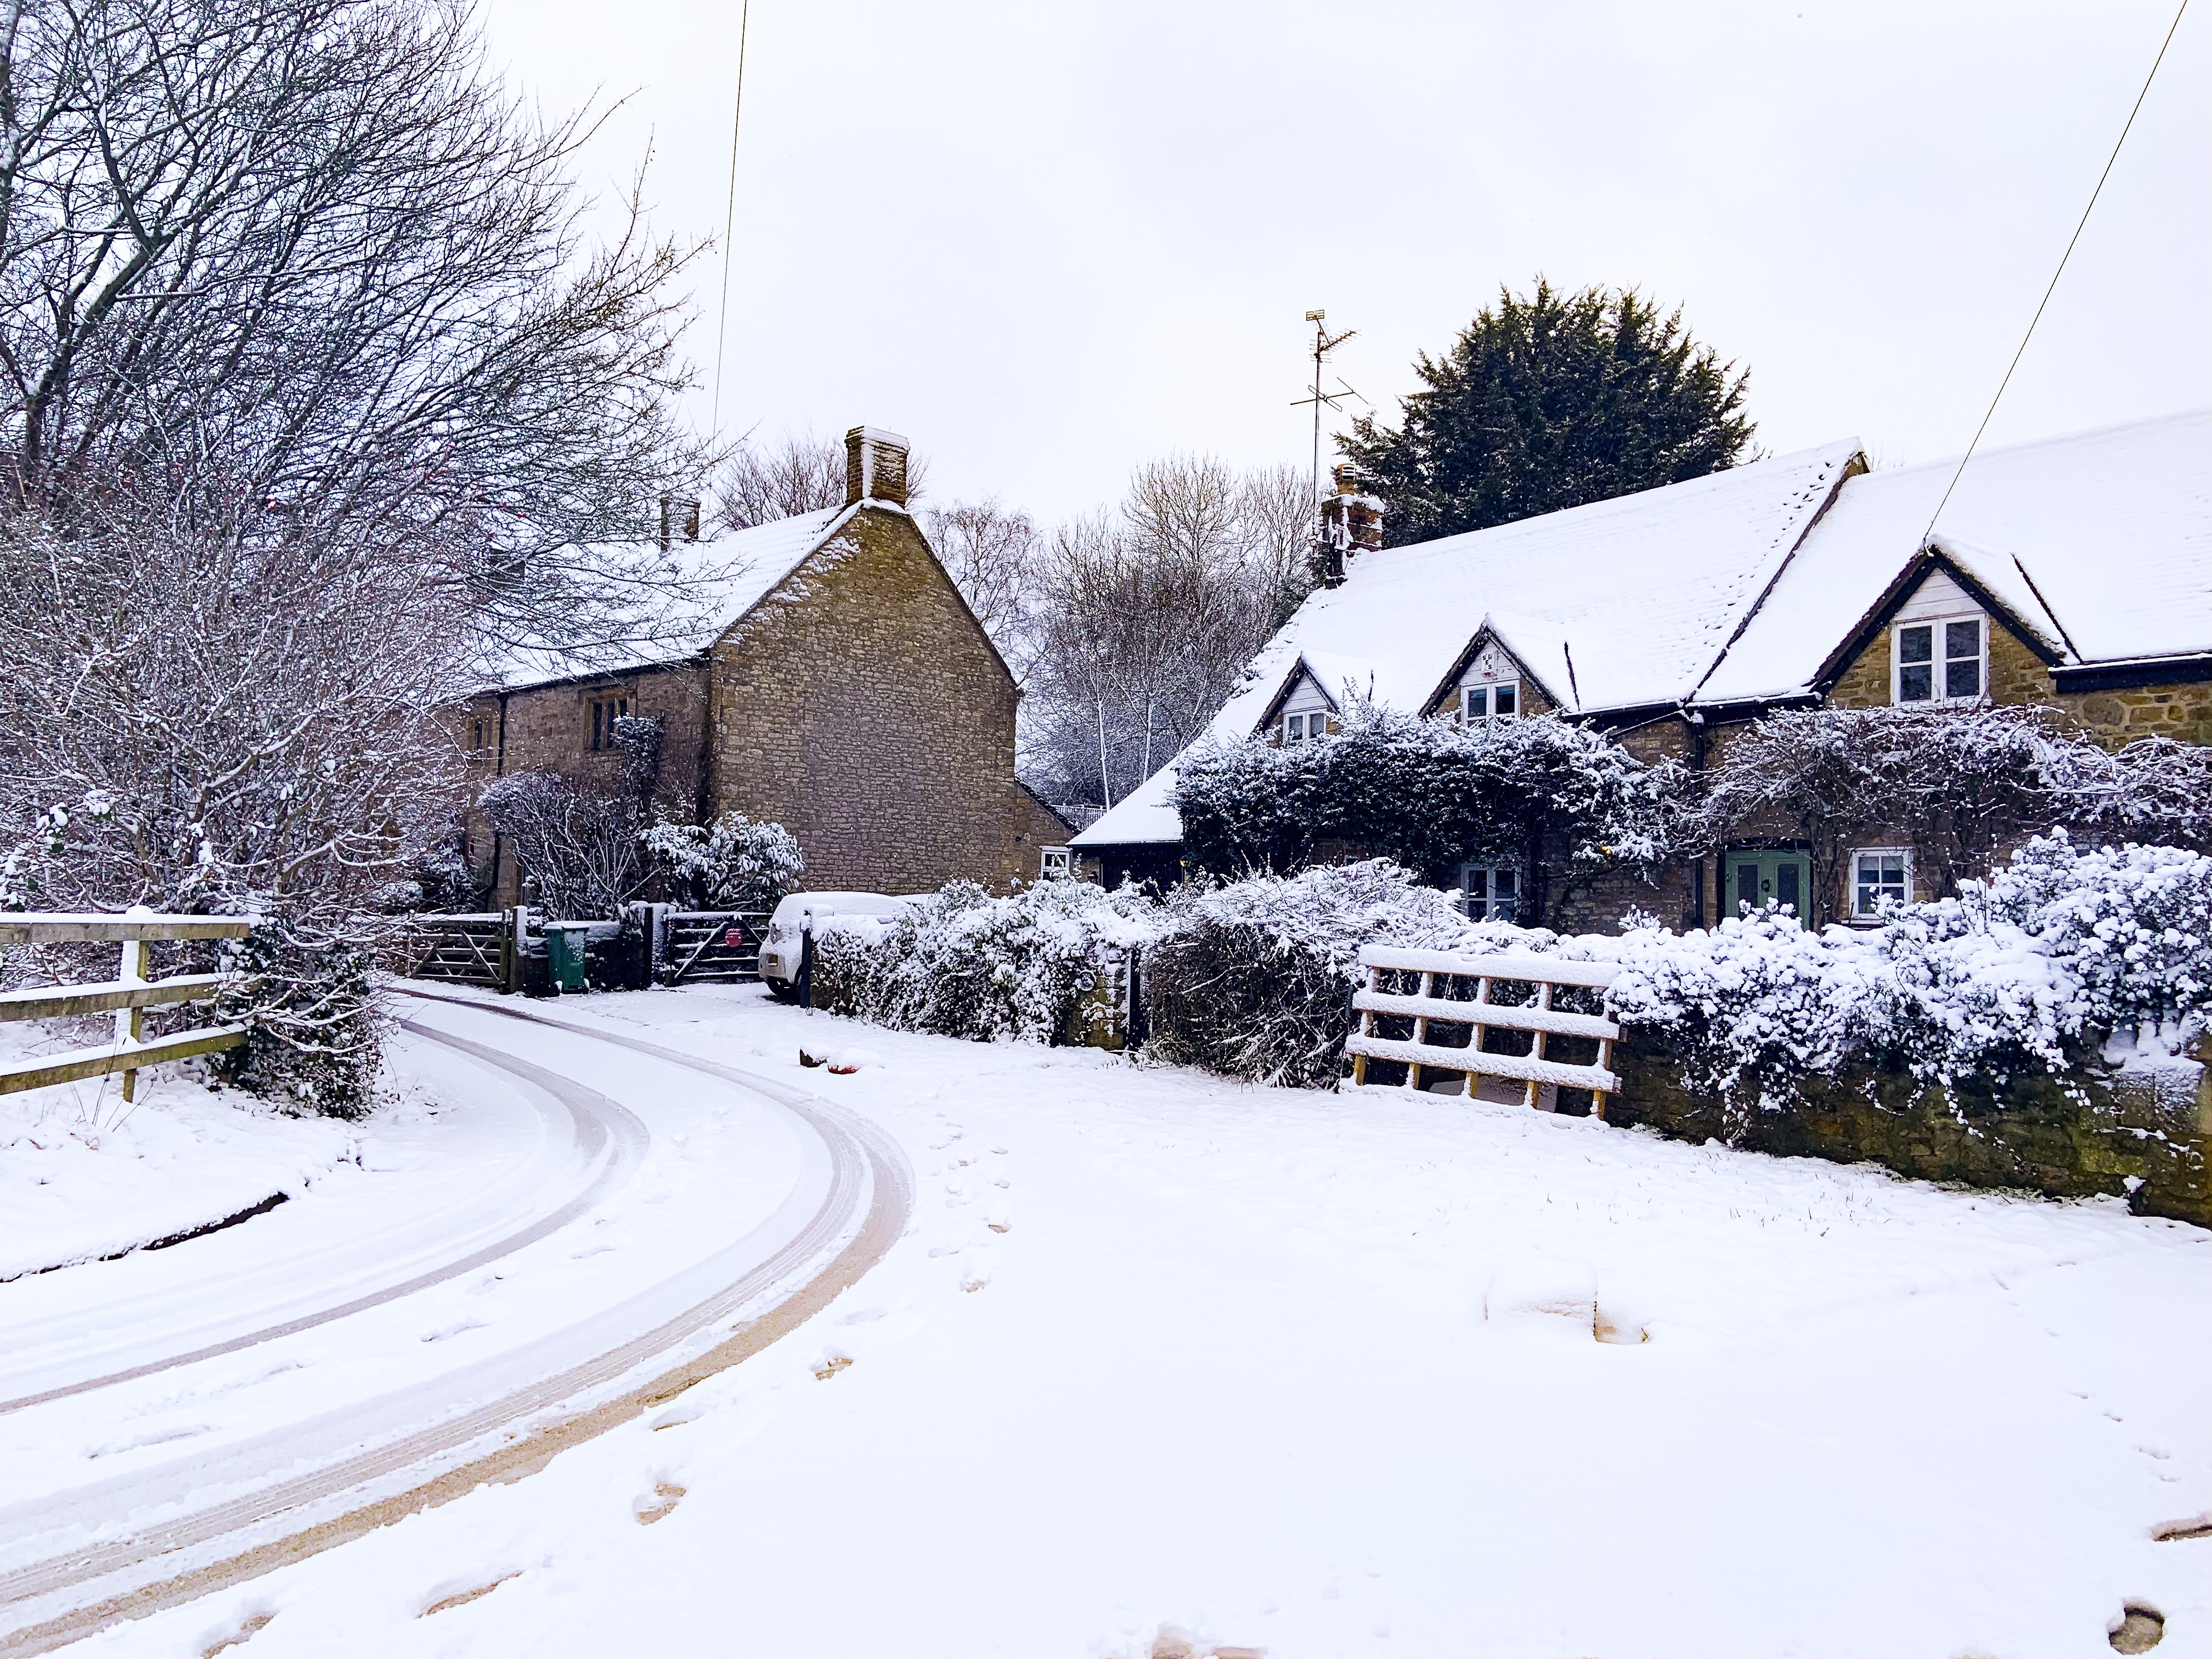 Snow Day - February 2019